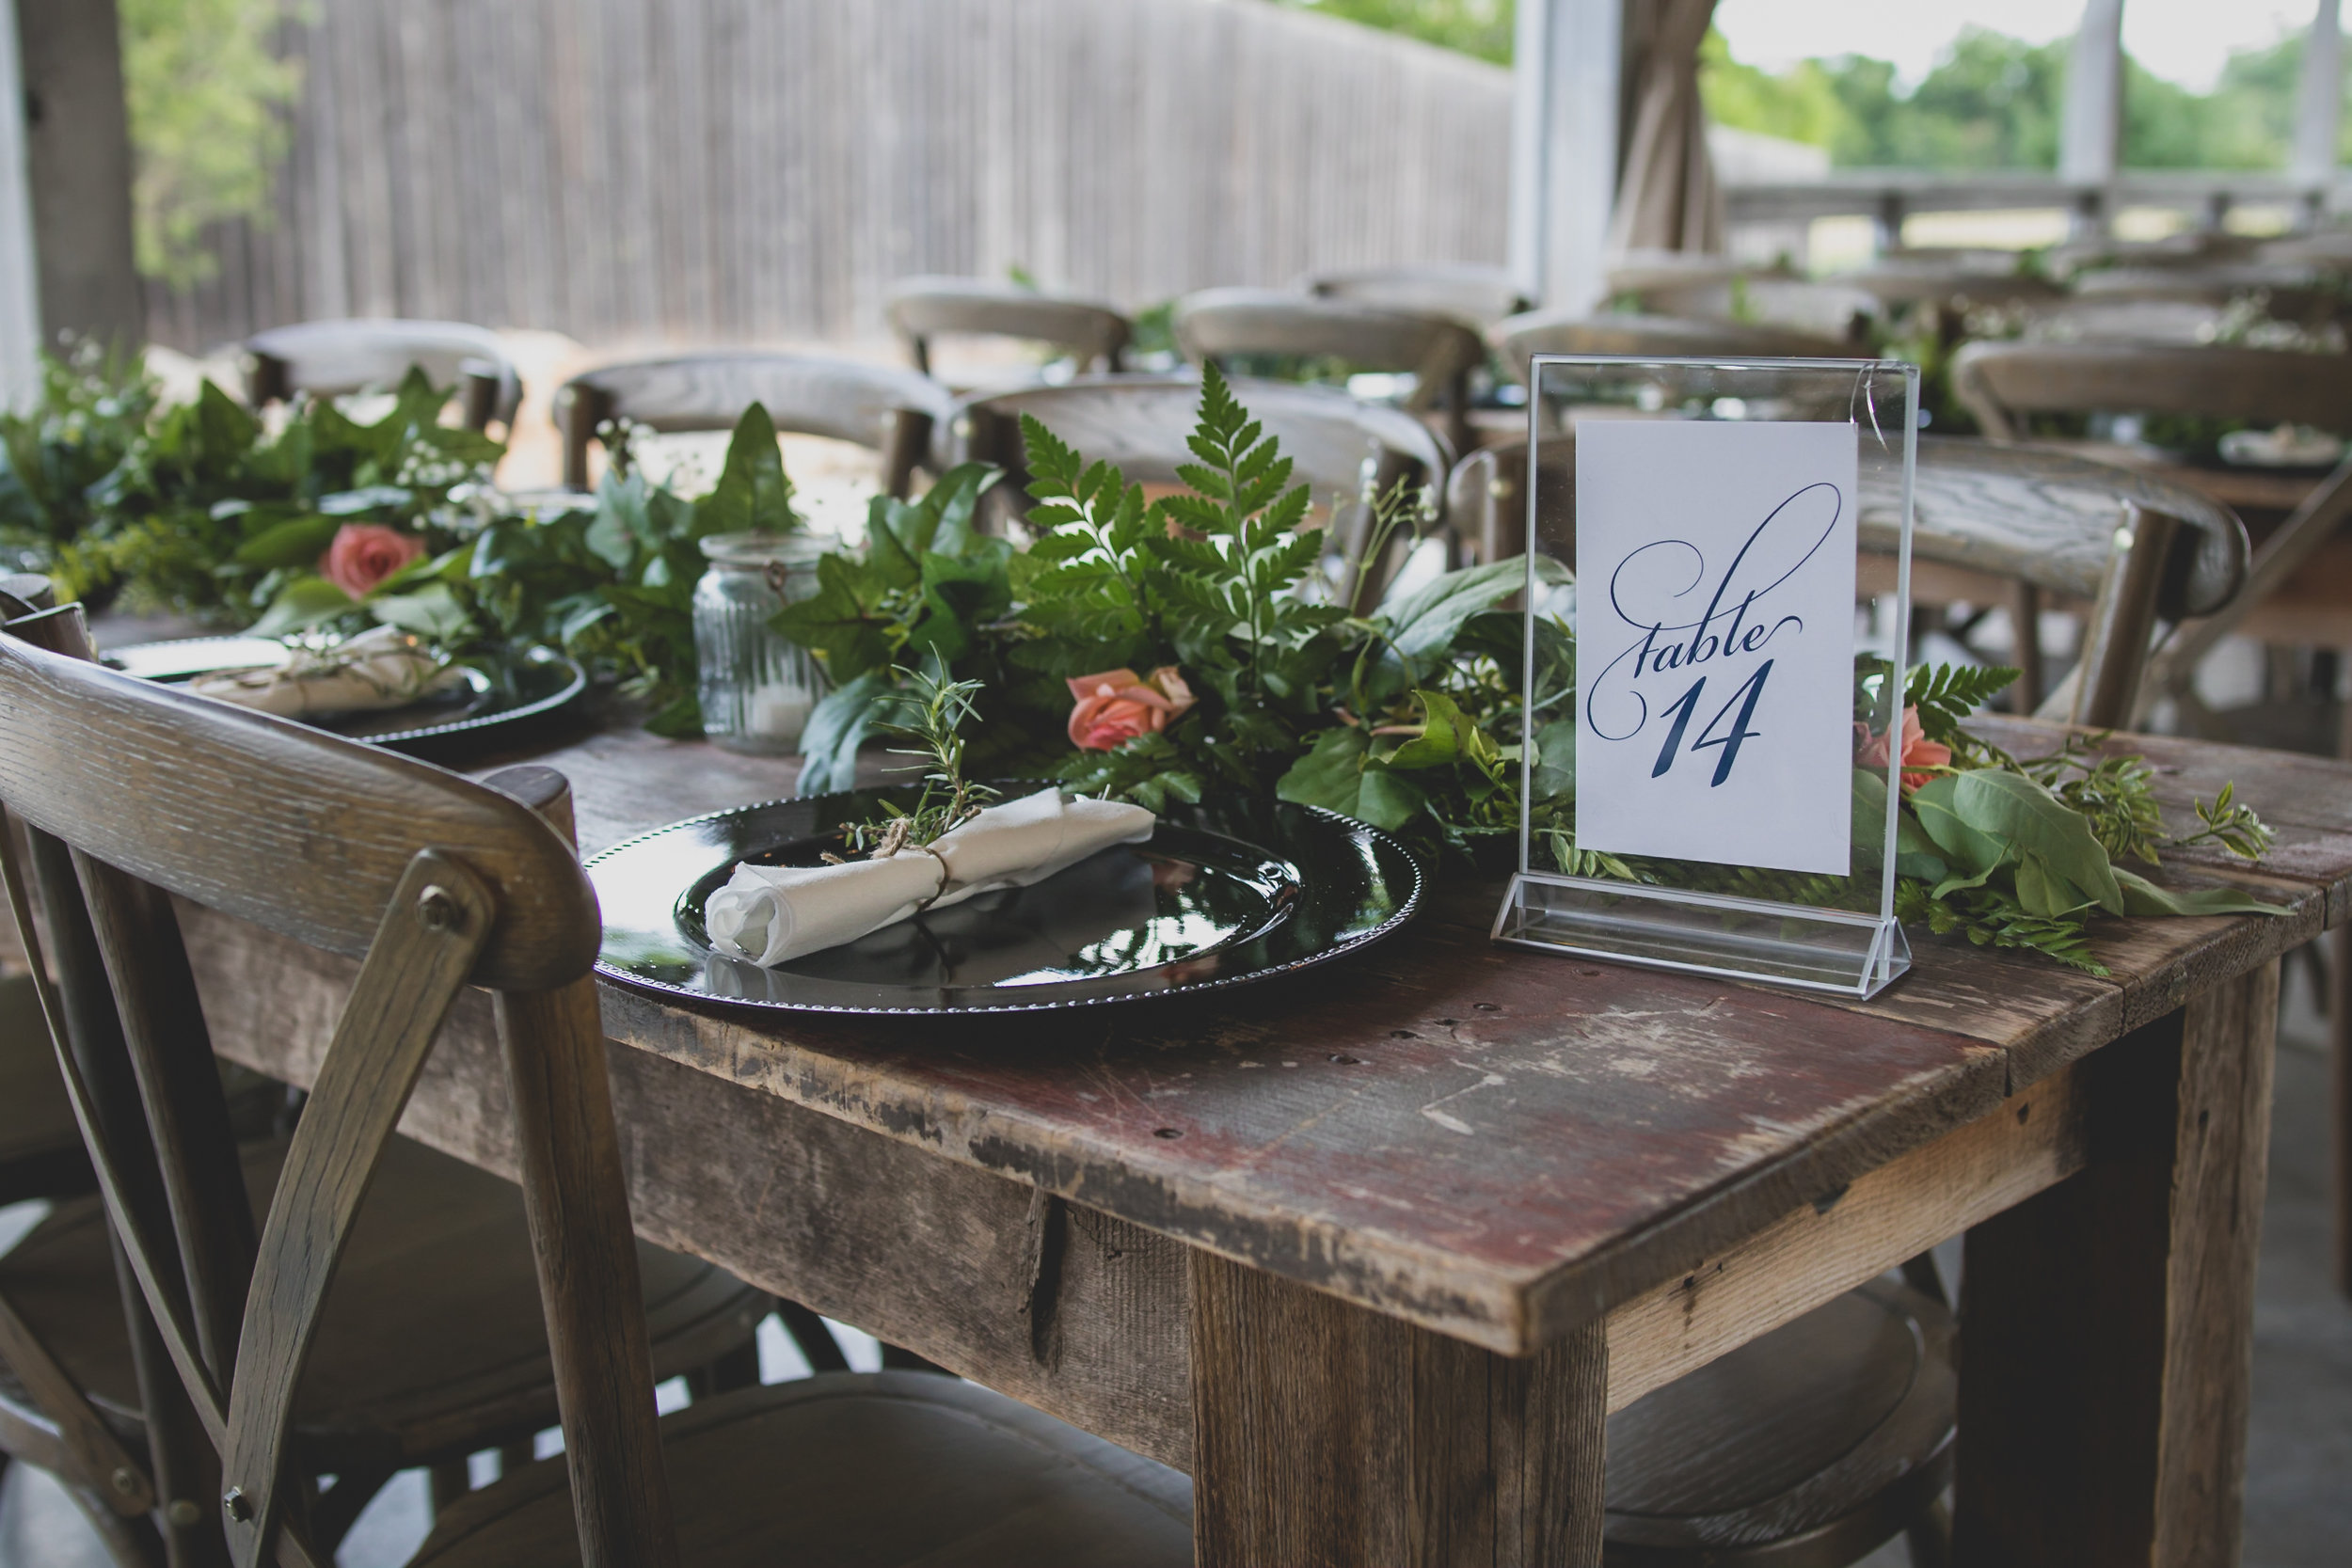 Important things to consider when planning a wedding - Reception table number 14.